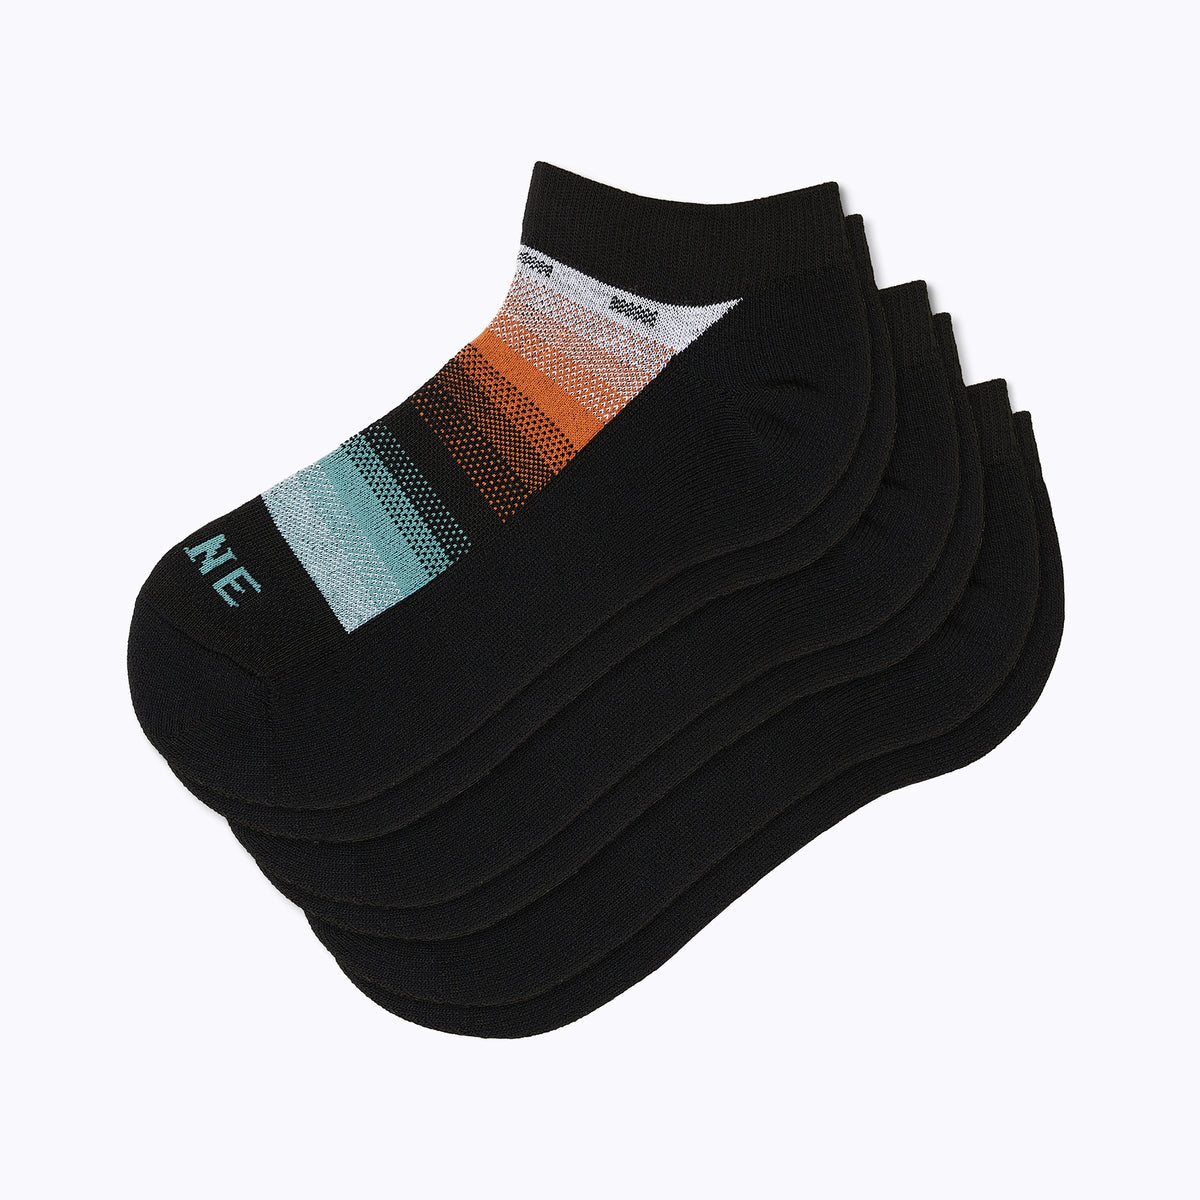 Serape 3 Pack Women's Ankle Socks - Multi by Canyon x Lane Socks